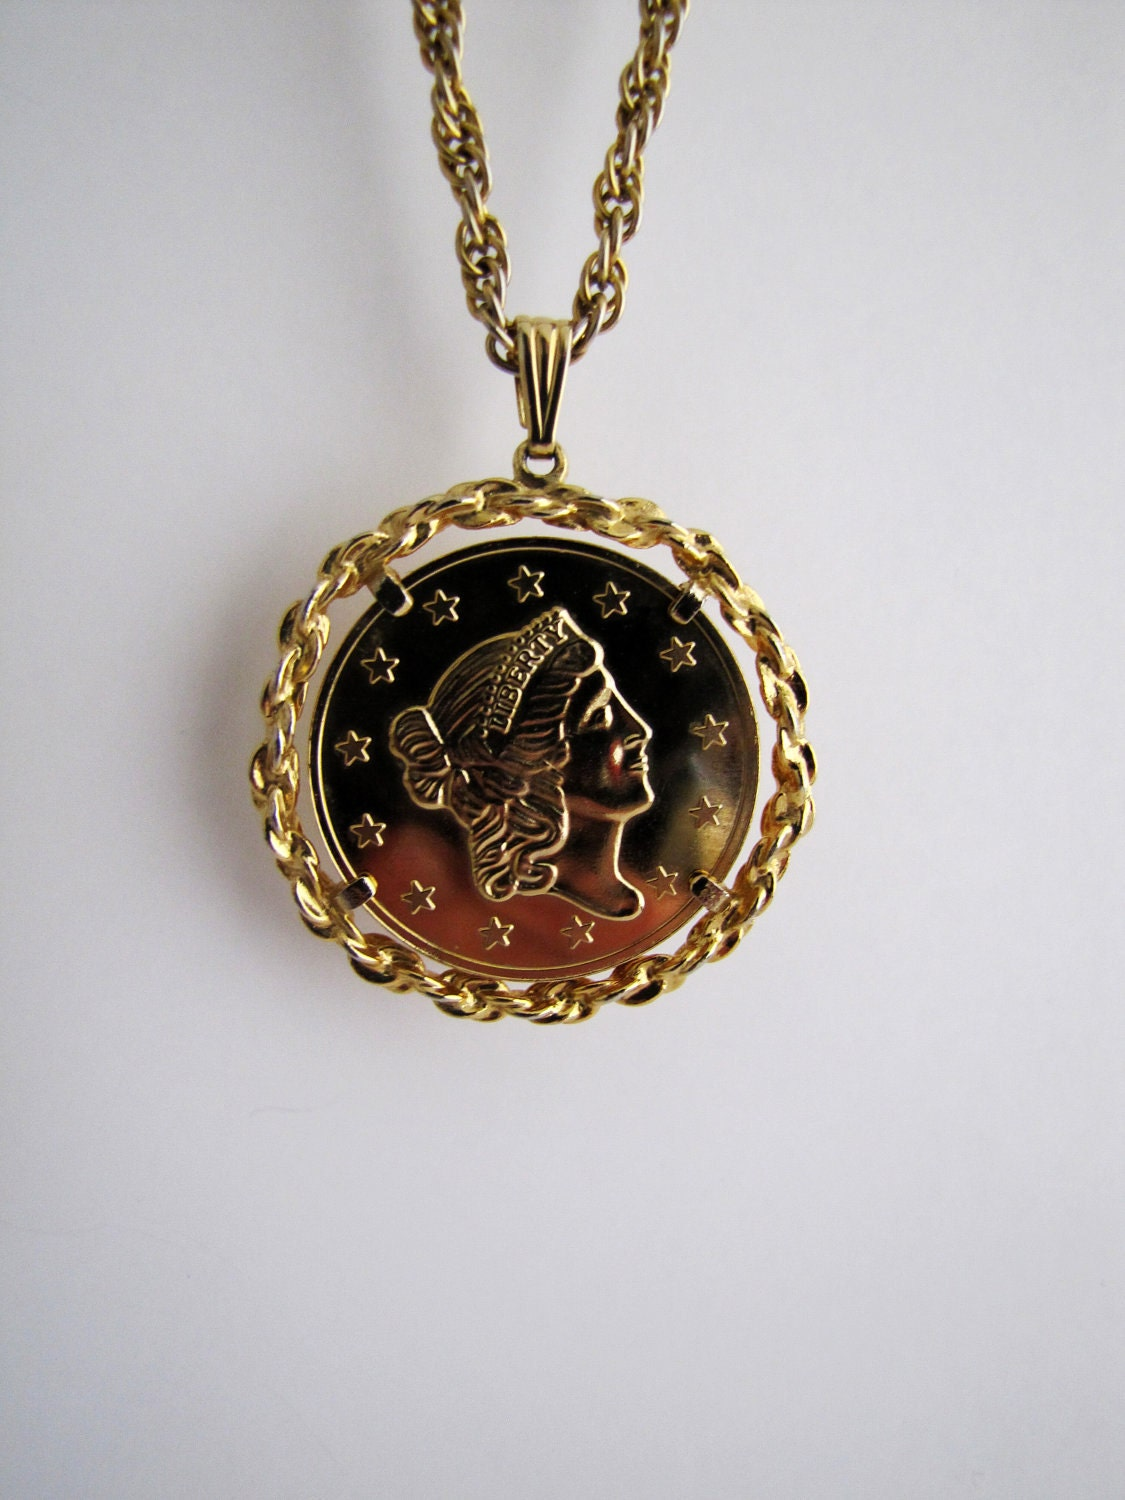 Vintage Bicentennial Gold Coin Necklace By Littlesixty On Etsy